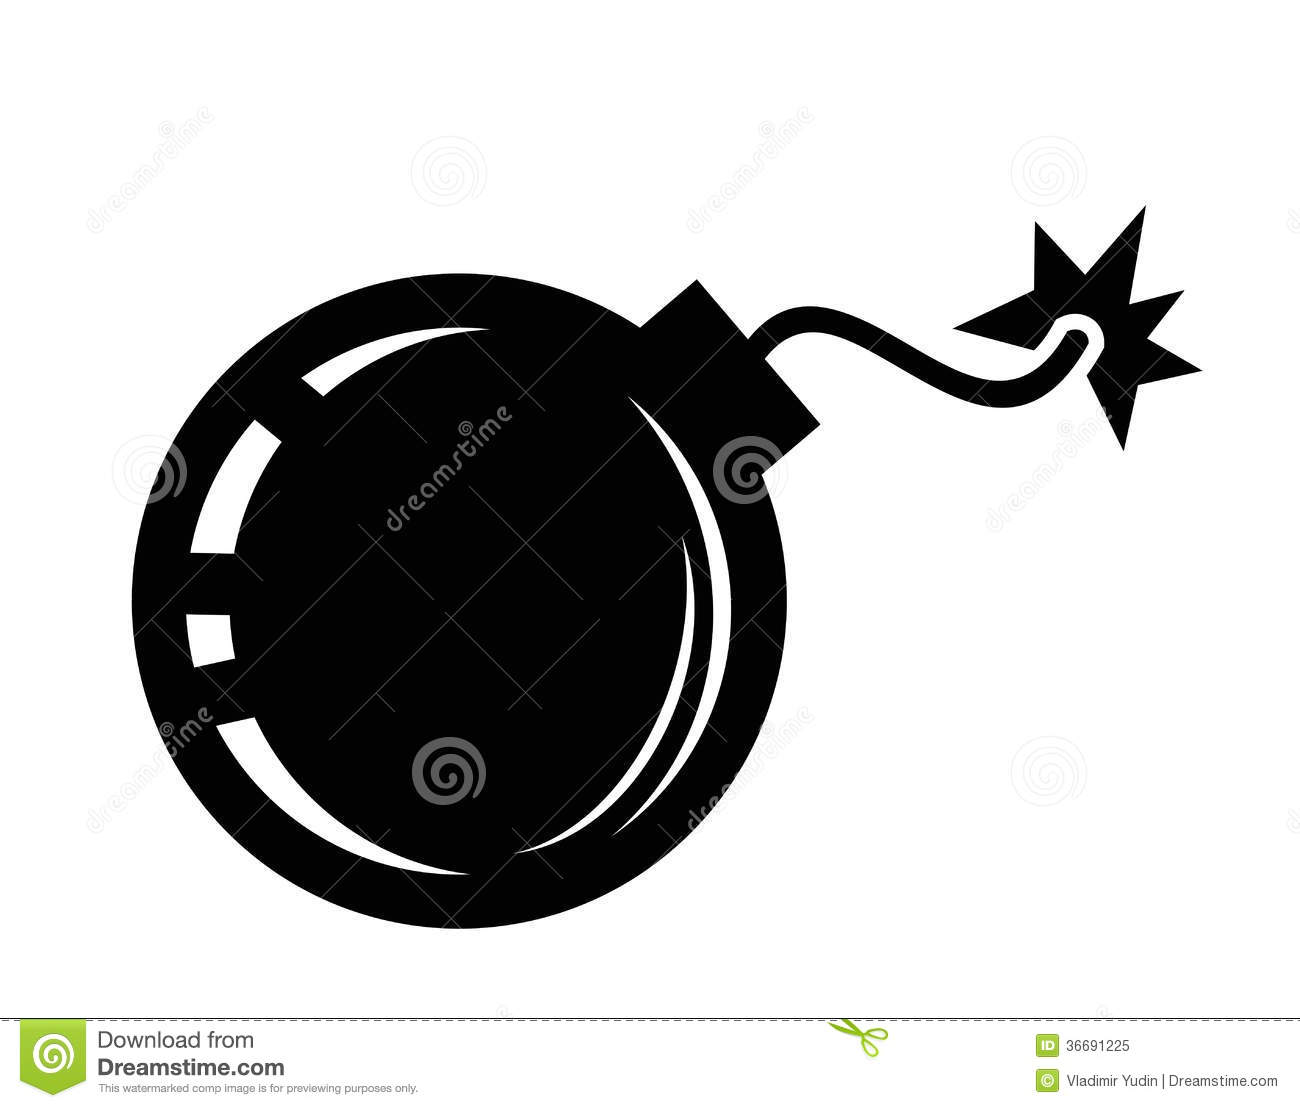 Bomb Icon Royalty Free Stock Photo - Image: 36691225